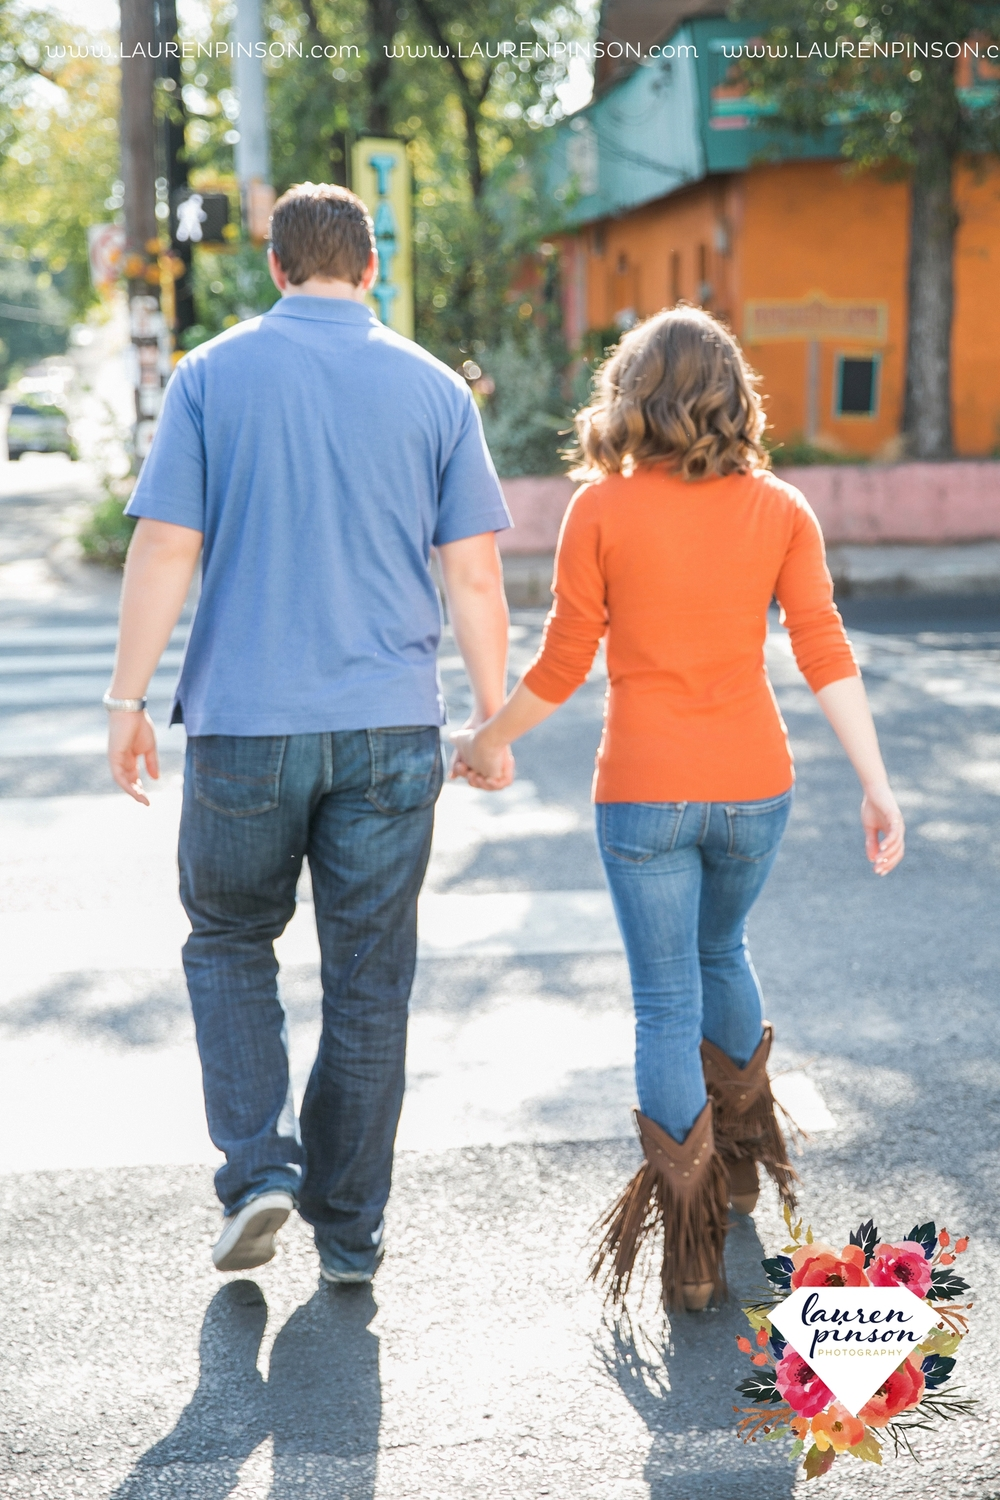 austin-texas-engagement-session-photography-by-wichita-falls-wedding-photgraphy-lauren-pinson_1380.jpg